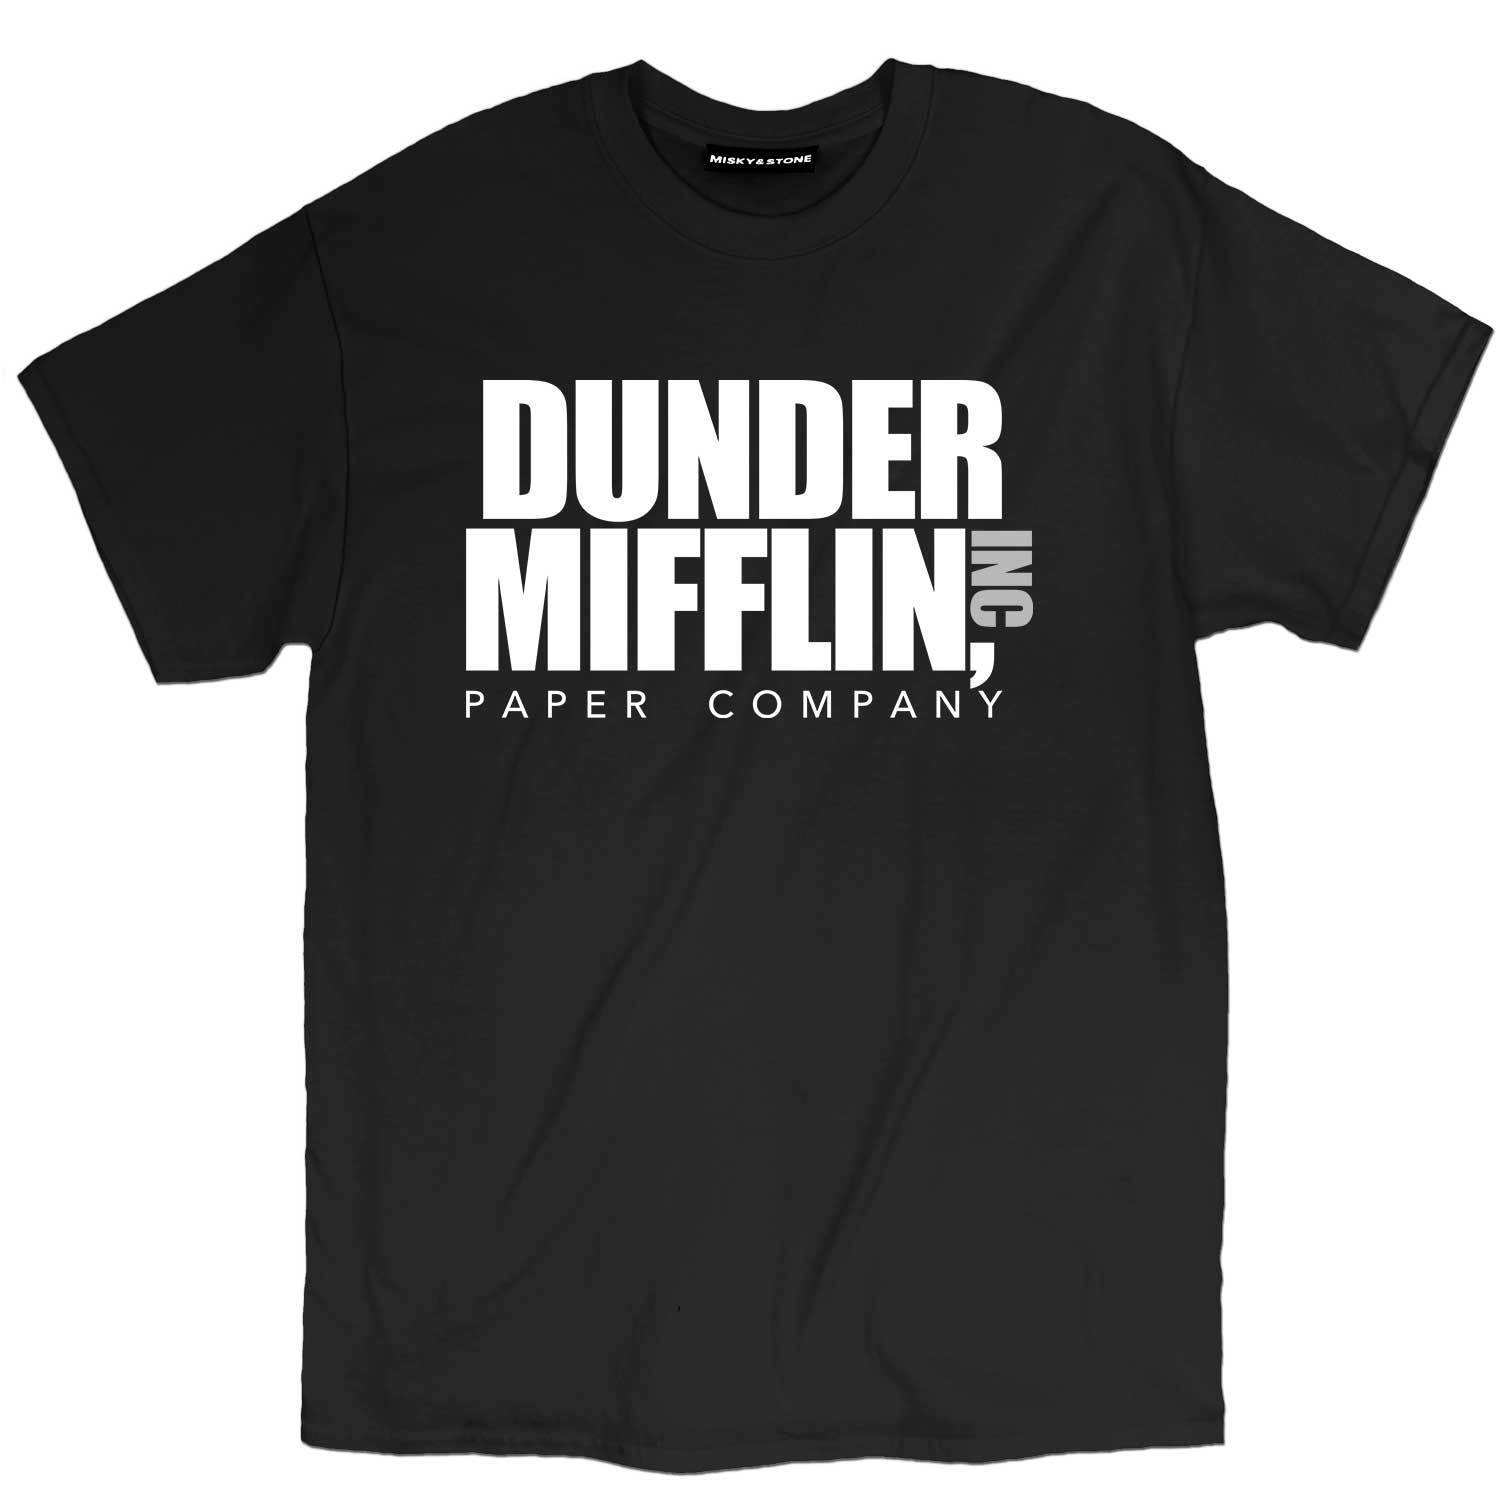 2019 Men T Shirt Fashion Summer Dunder Mifflin Inc Paper Company Funny Pop Culture Tv Show Tee Shirt Discounts Sale